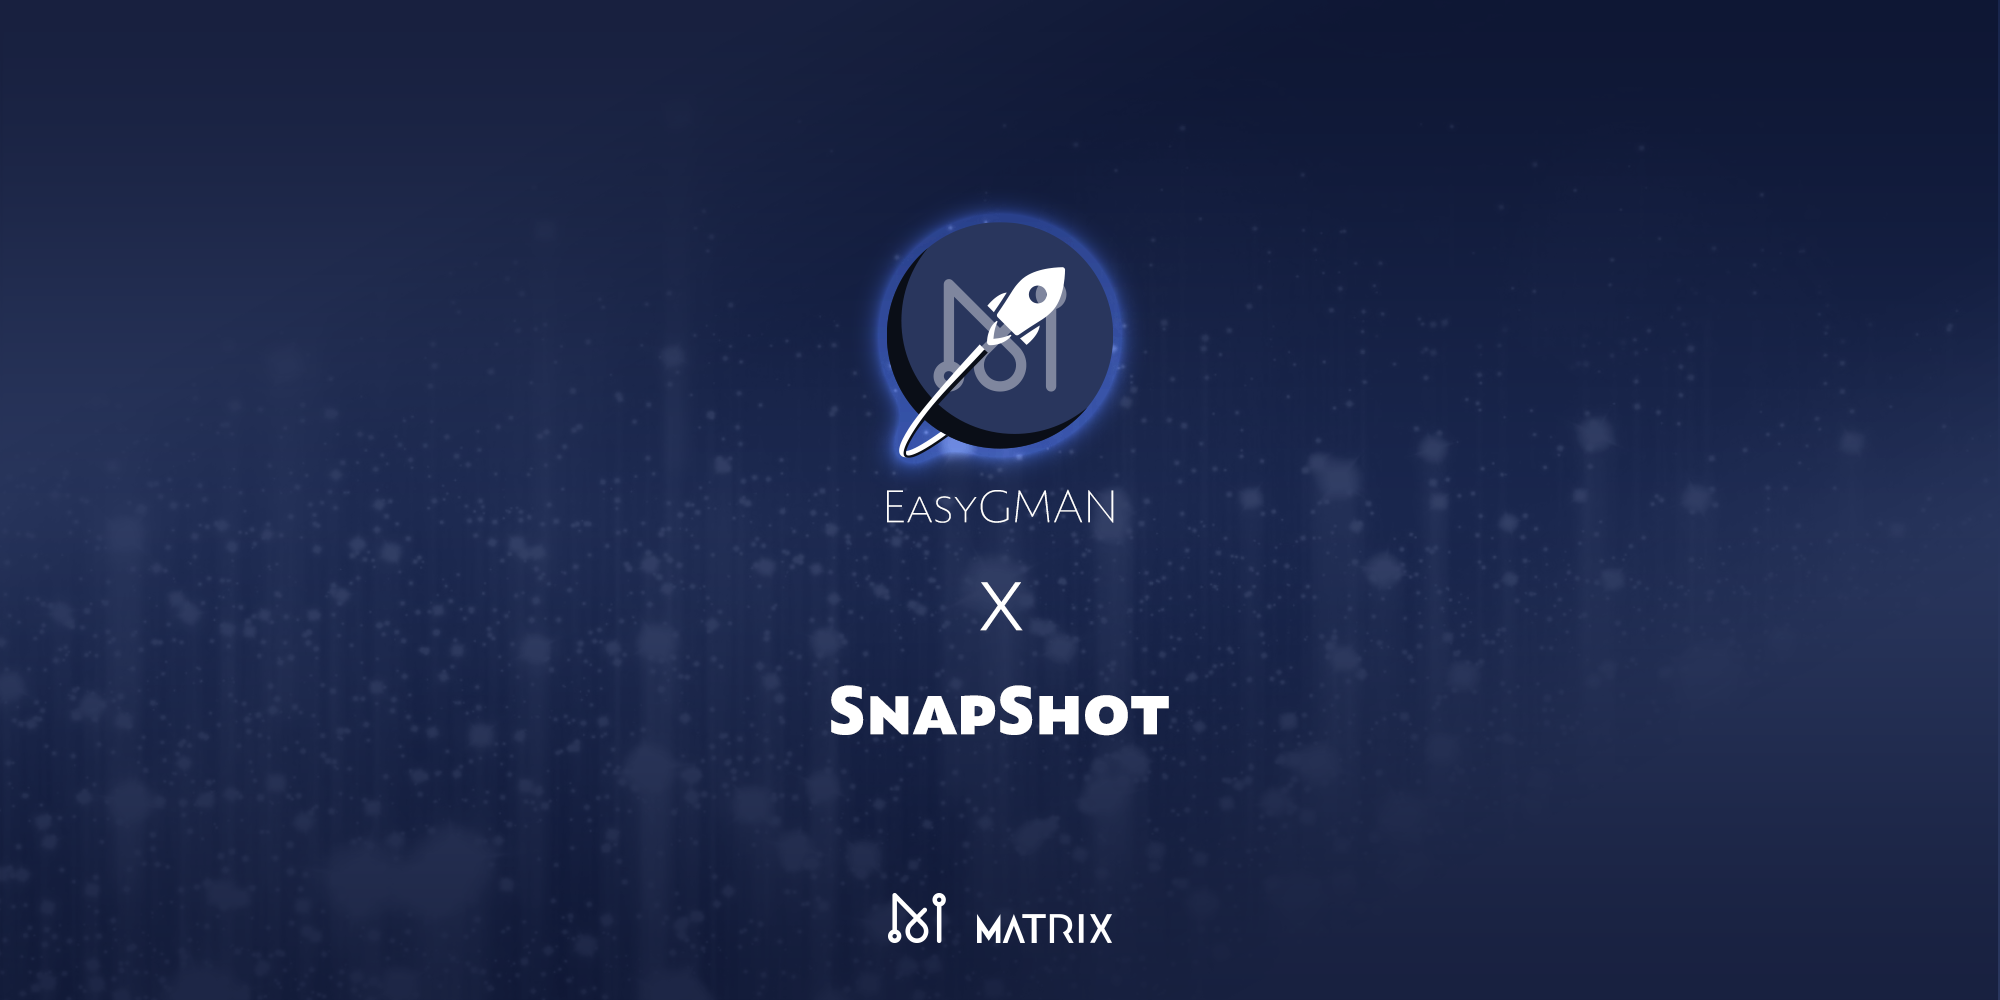 EasyGMAN: Launch a New Masternode in One Click